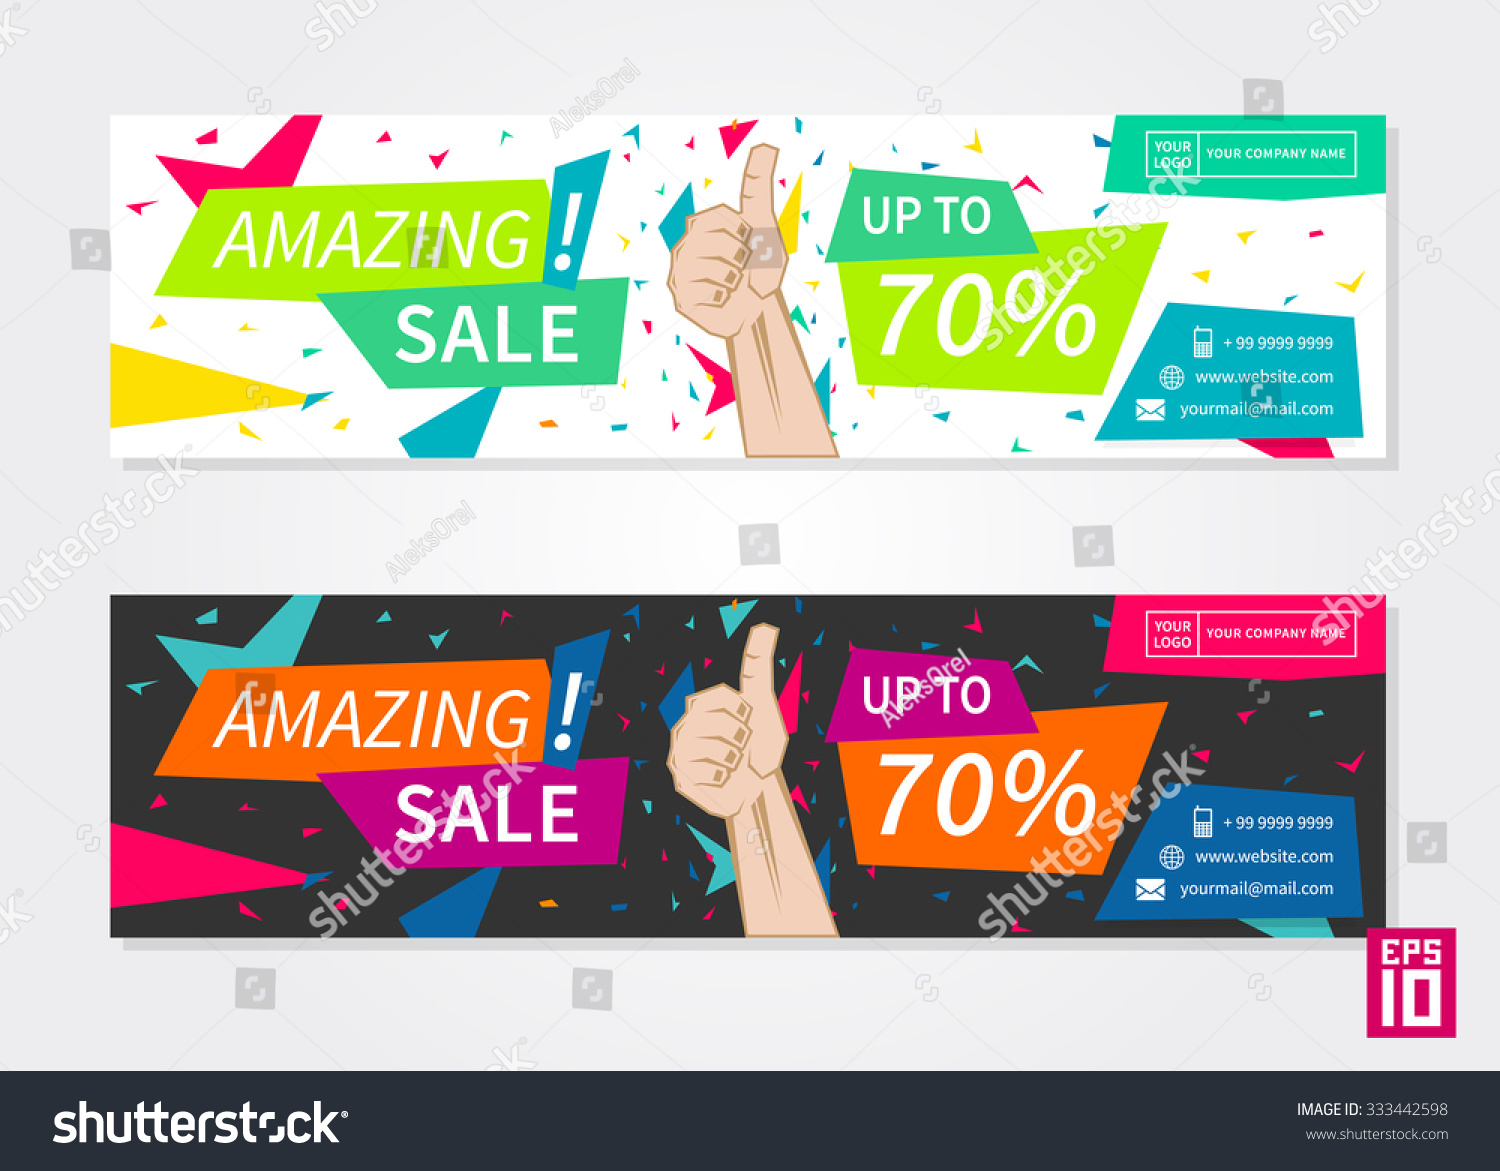 Vector Promotion Banner Amazing Sale Business Vector – Promotional Flyer Template